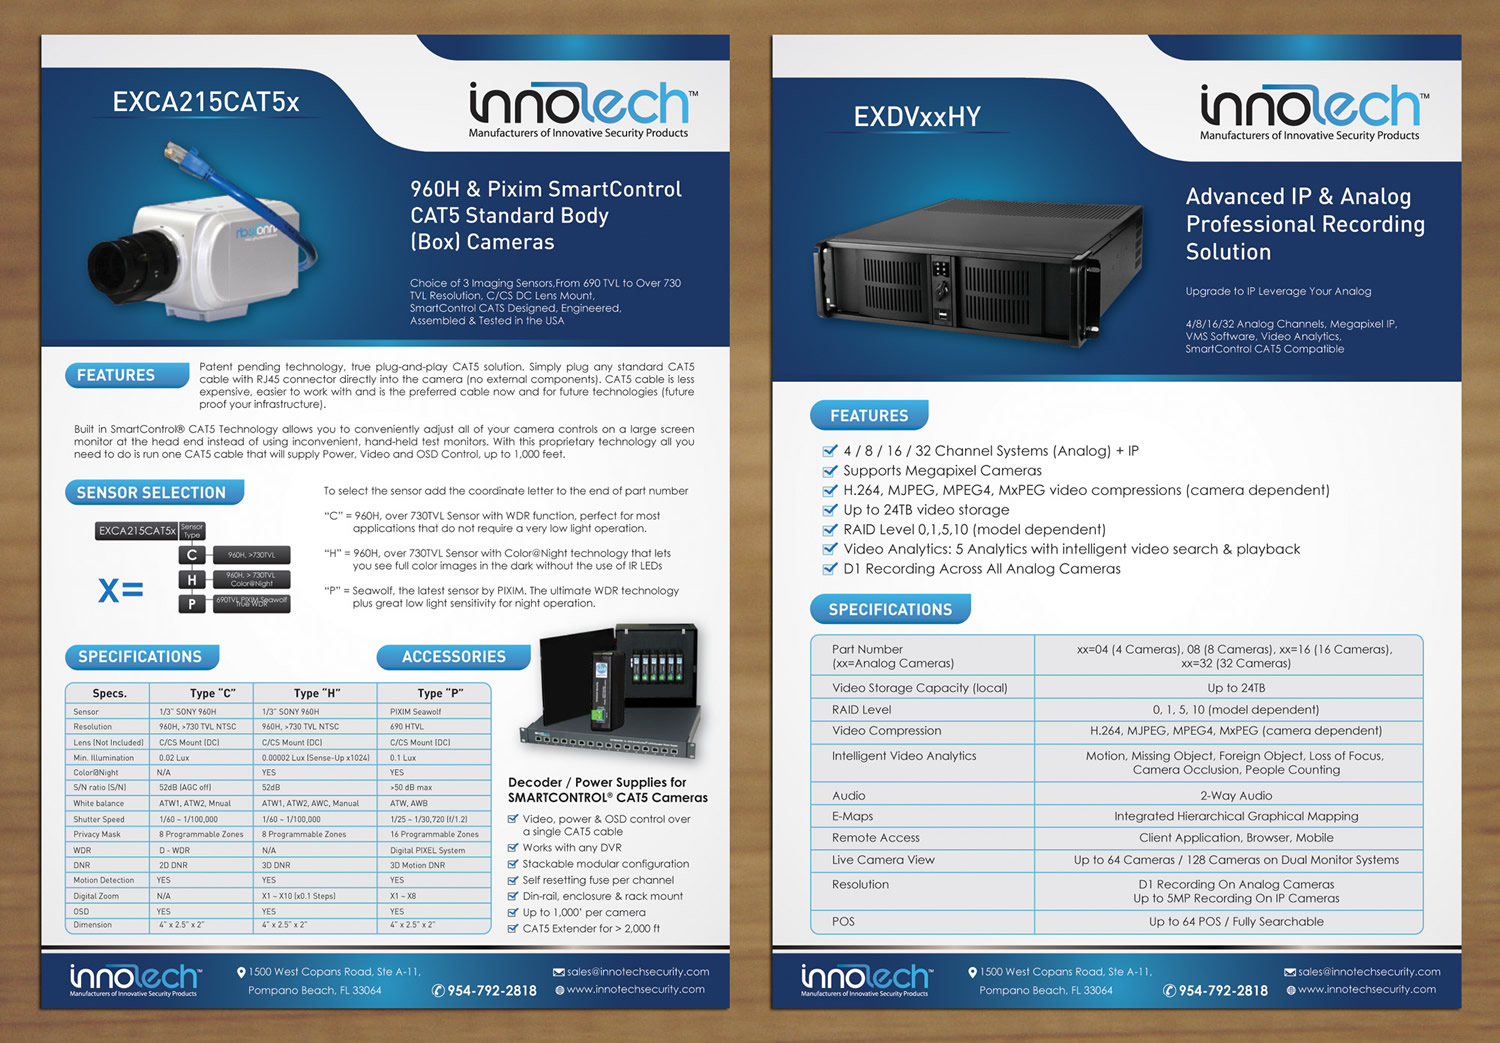 It Company Flyer Design for a Company by Sbss | Design #3149265